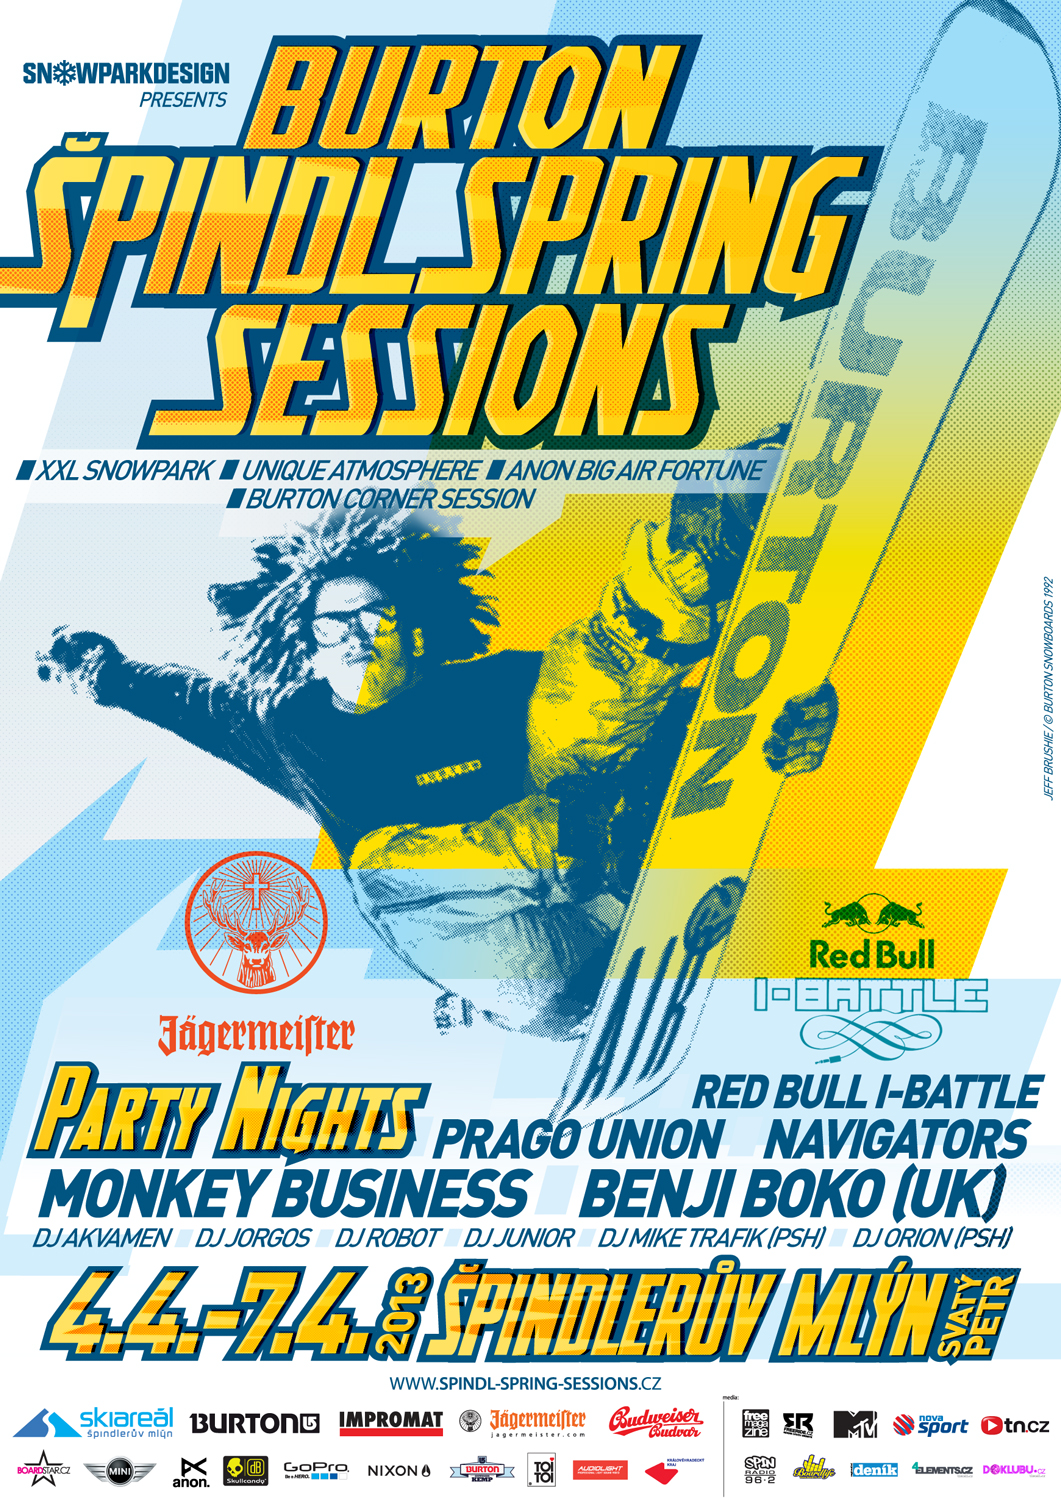 Burton Spindl Spring Sessions 2013